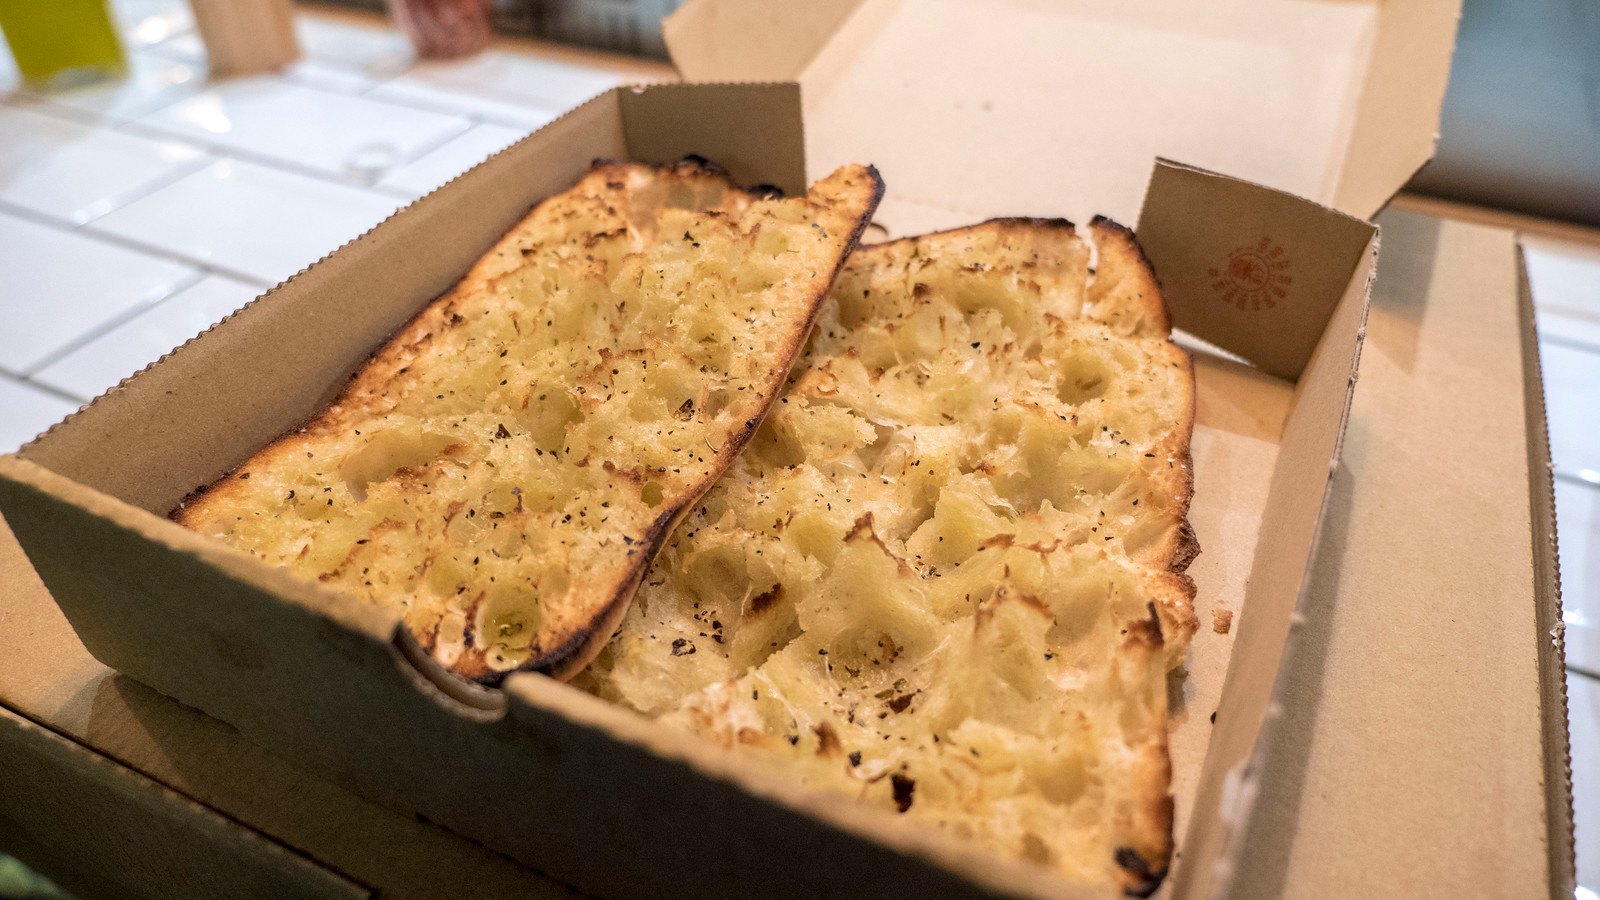 Vegan Garlic bread from The Dough Bros - Vegan Galway Restaurant and Dining Guide